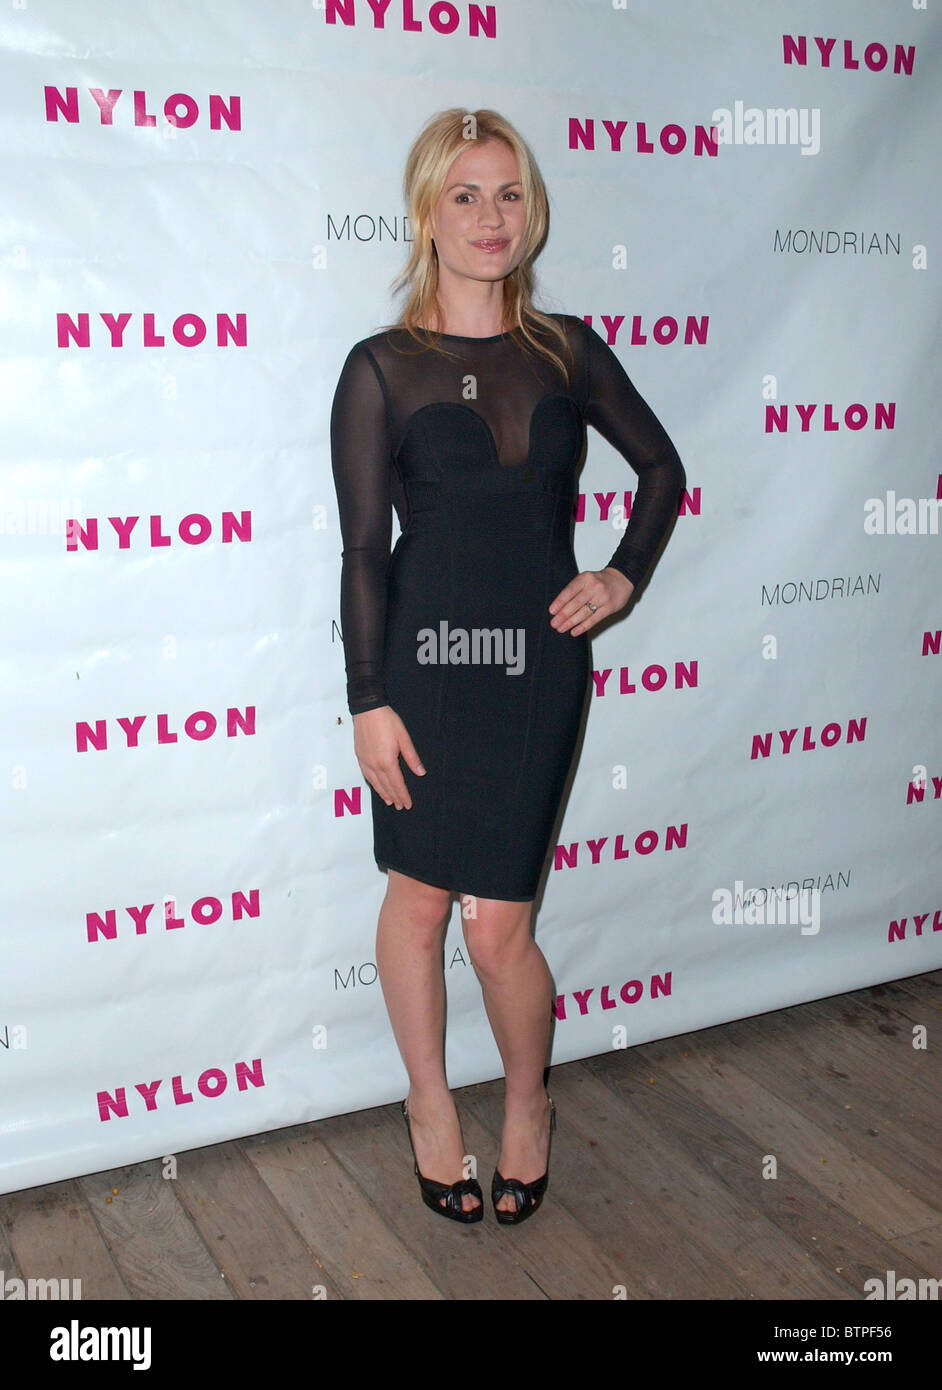 Nylonmagazinetv Nylon Tv